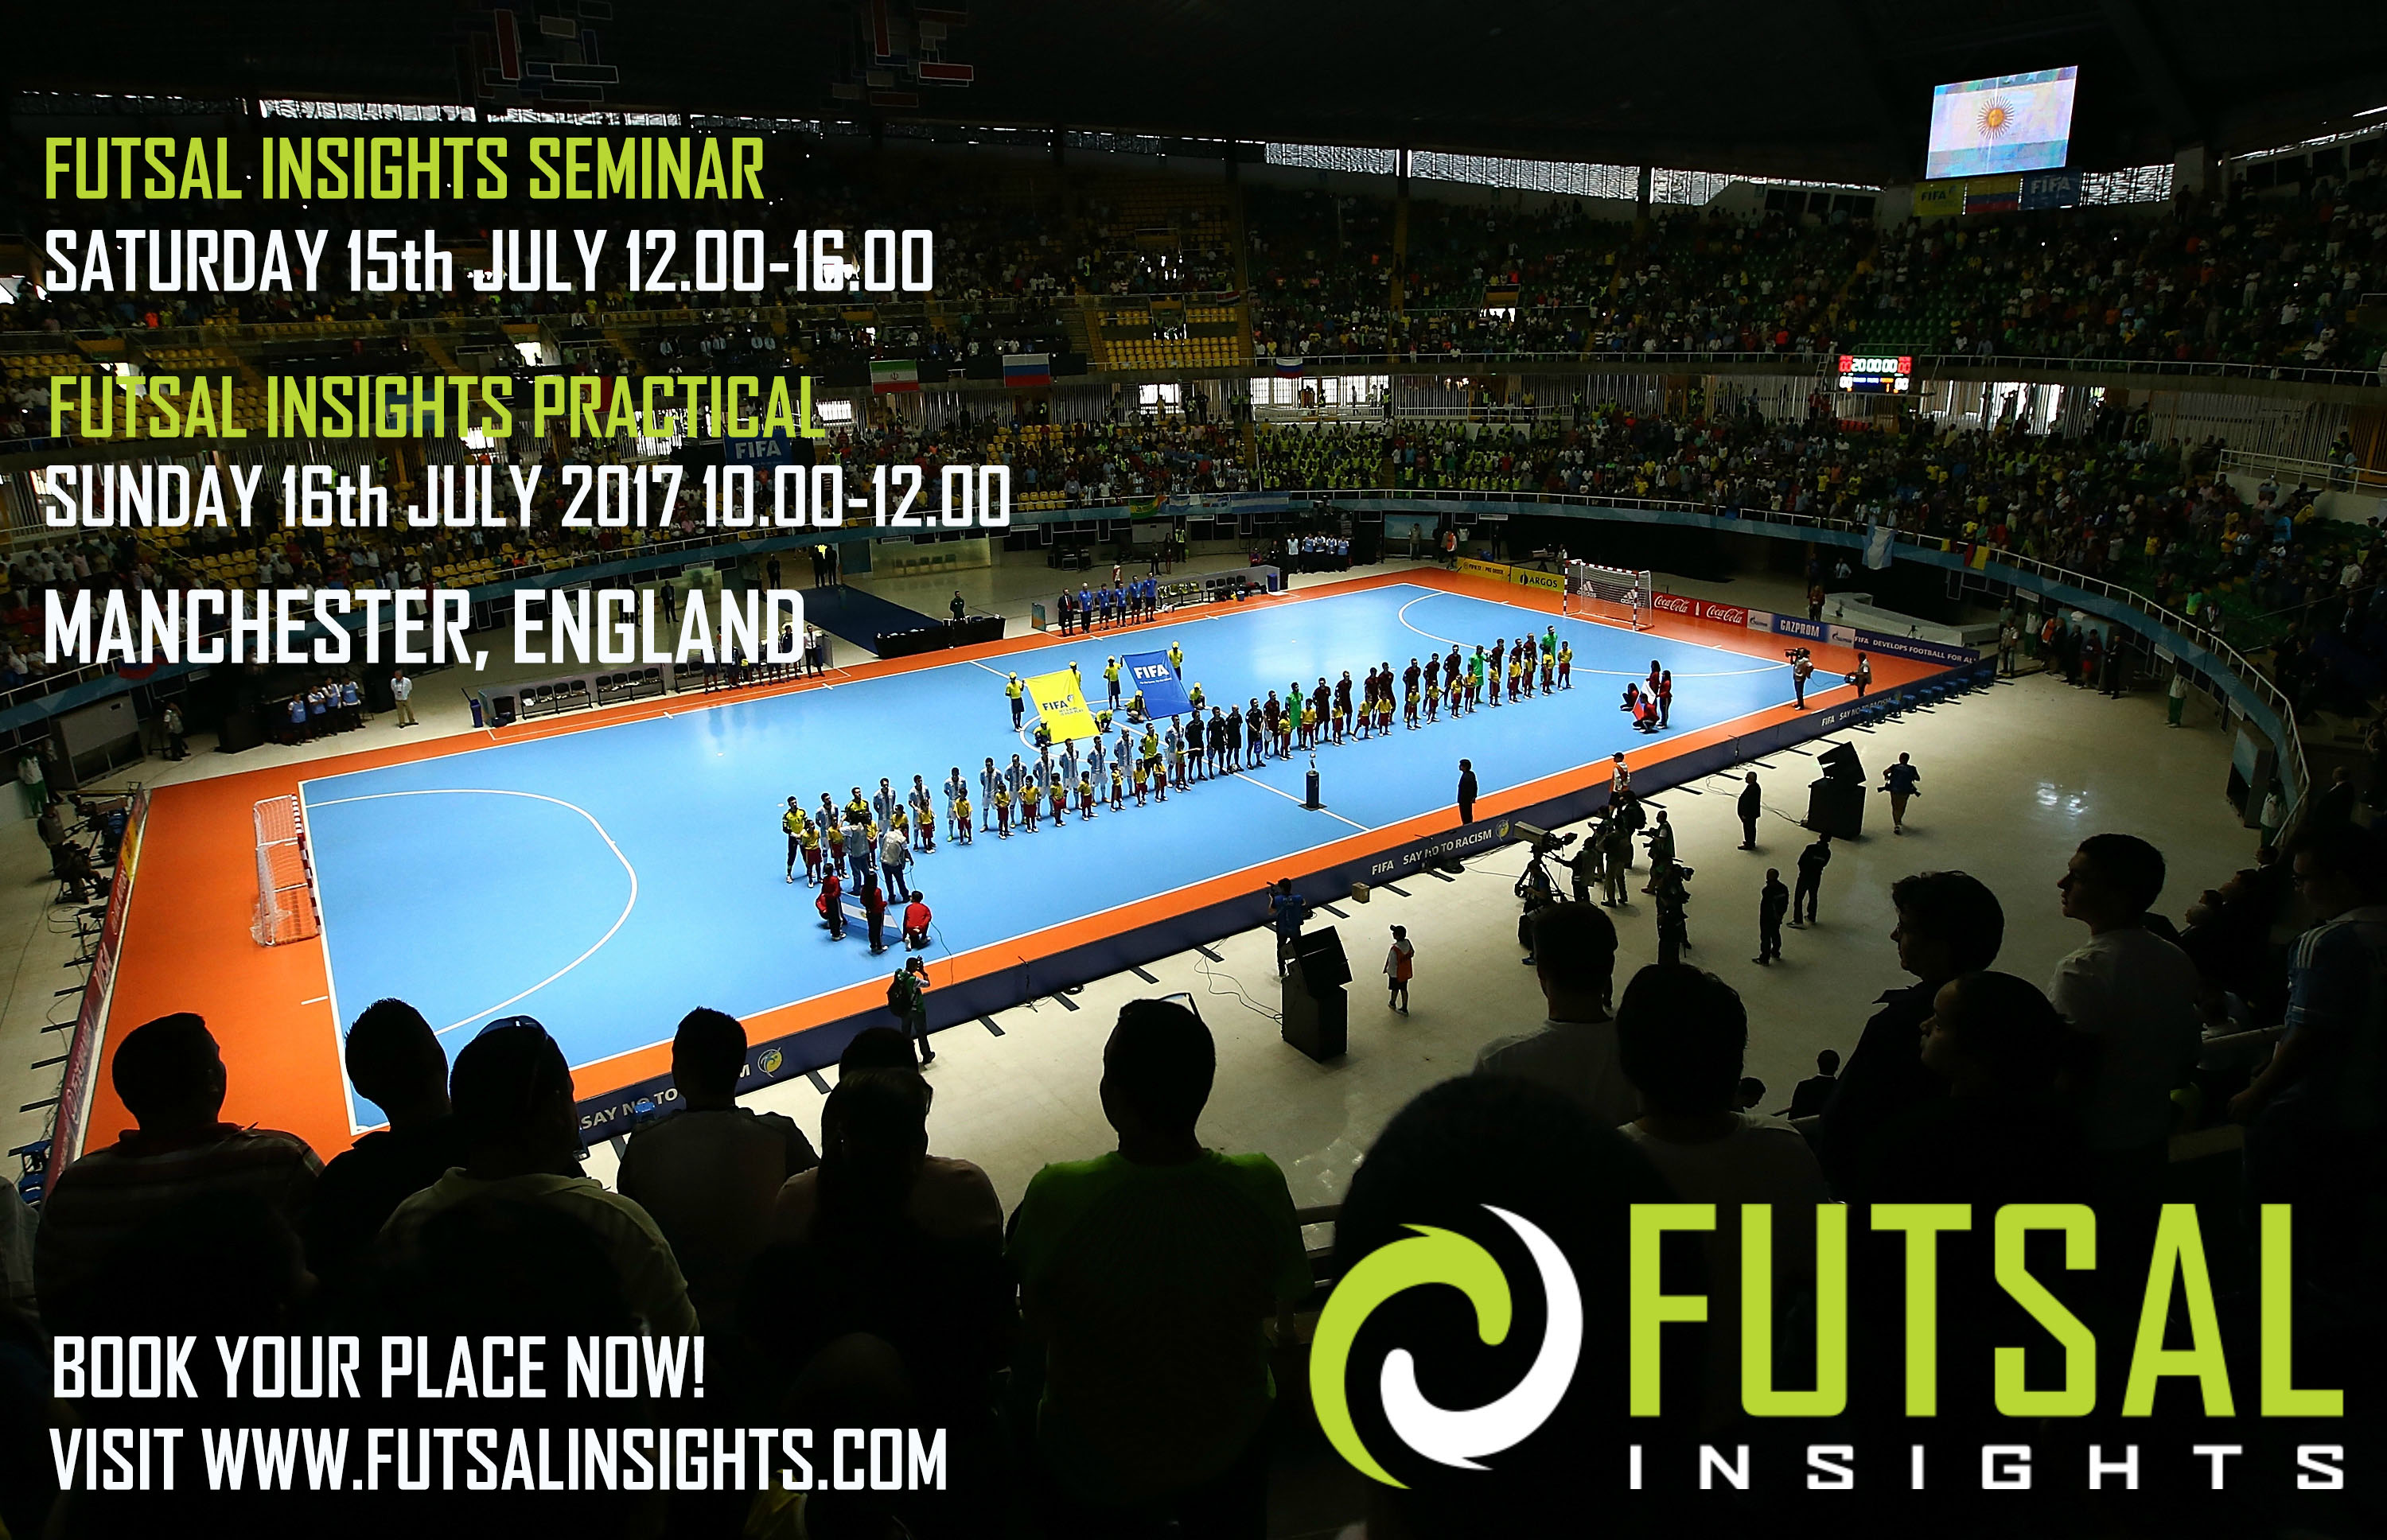 Futsal Insights Seminar 15-16 July